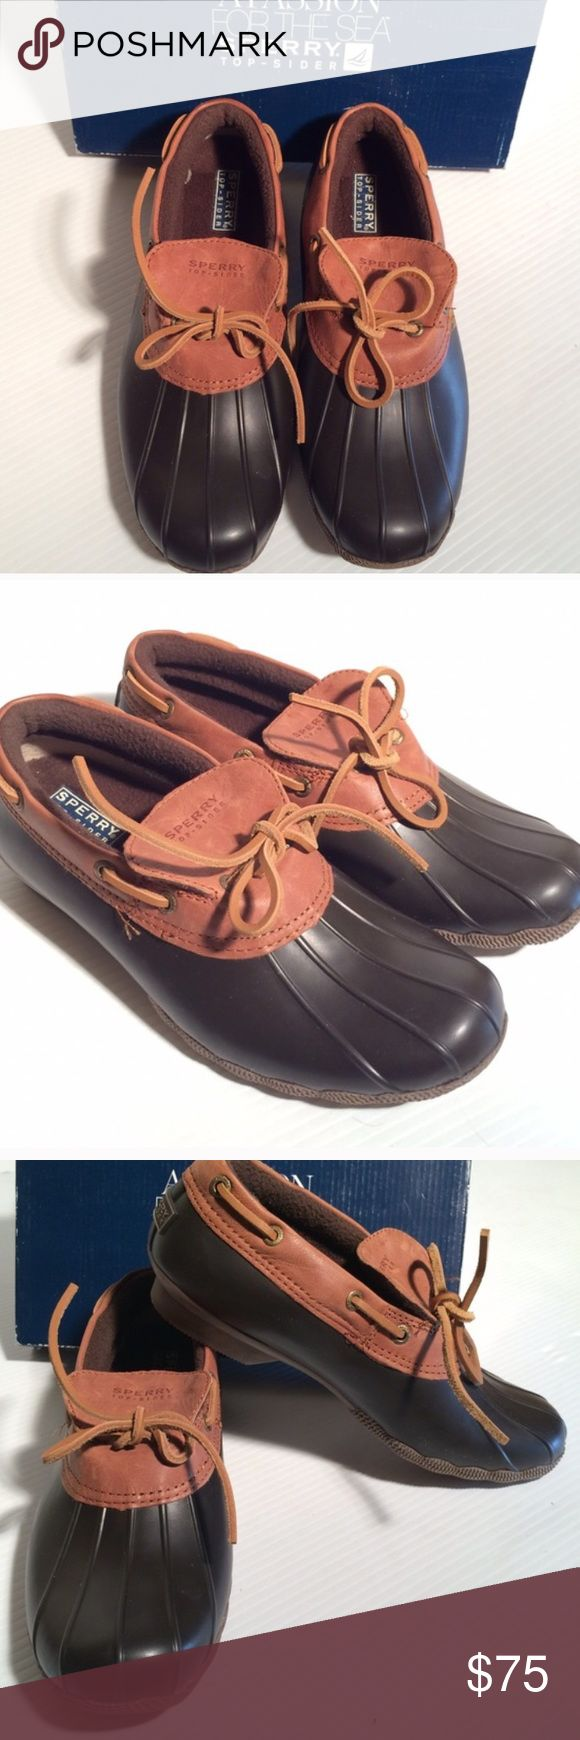 NWT Sperry Duck Rain Boots BROWN New in box. Sperry Top Sider boots. Perfect for rainy and winter days!  Size 7. Sperry Top-Sider Shoes Winter & Rain Boots